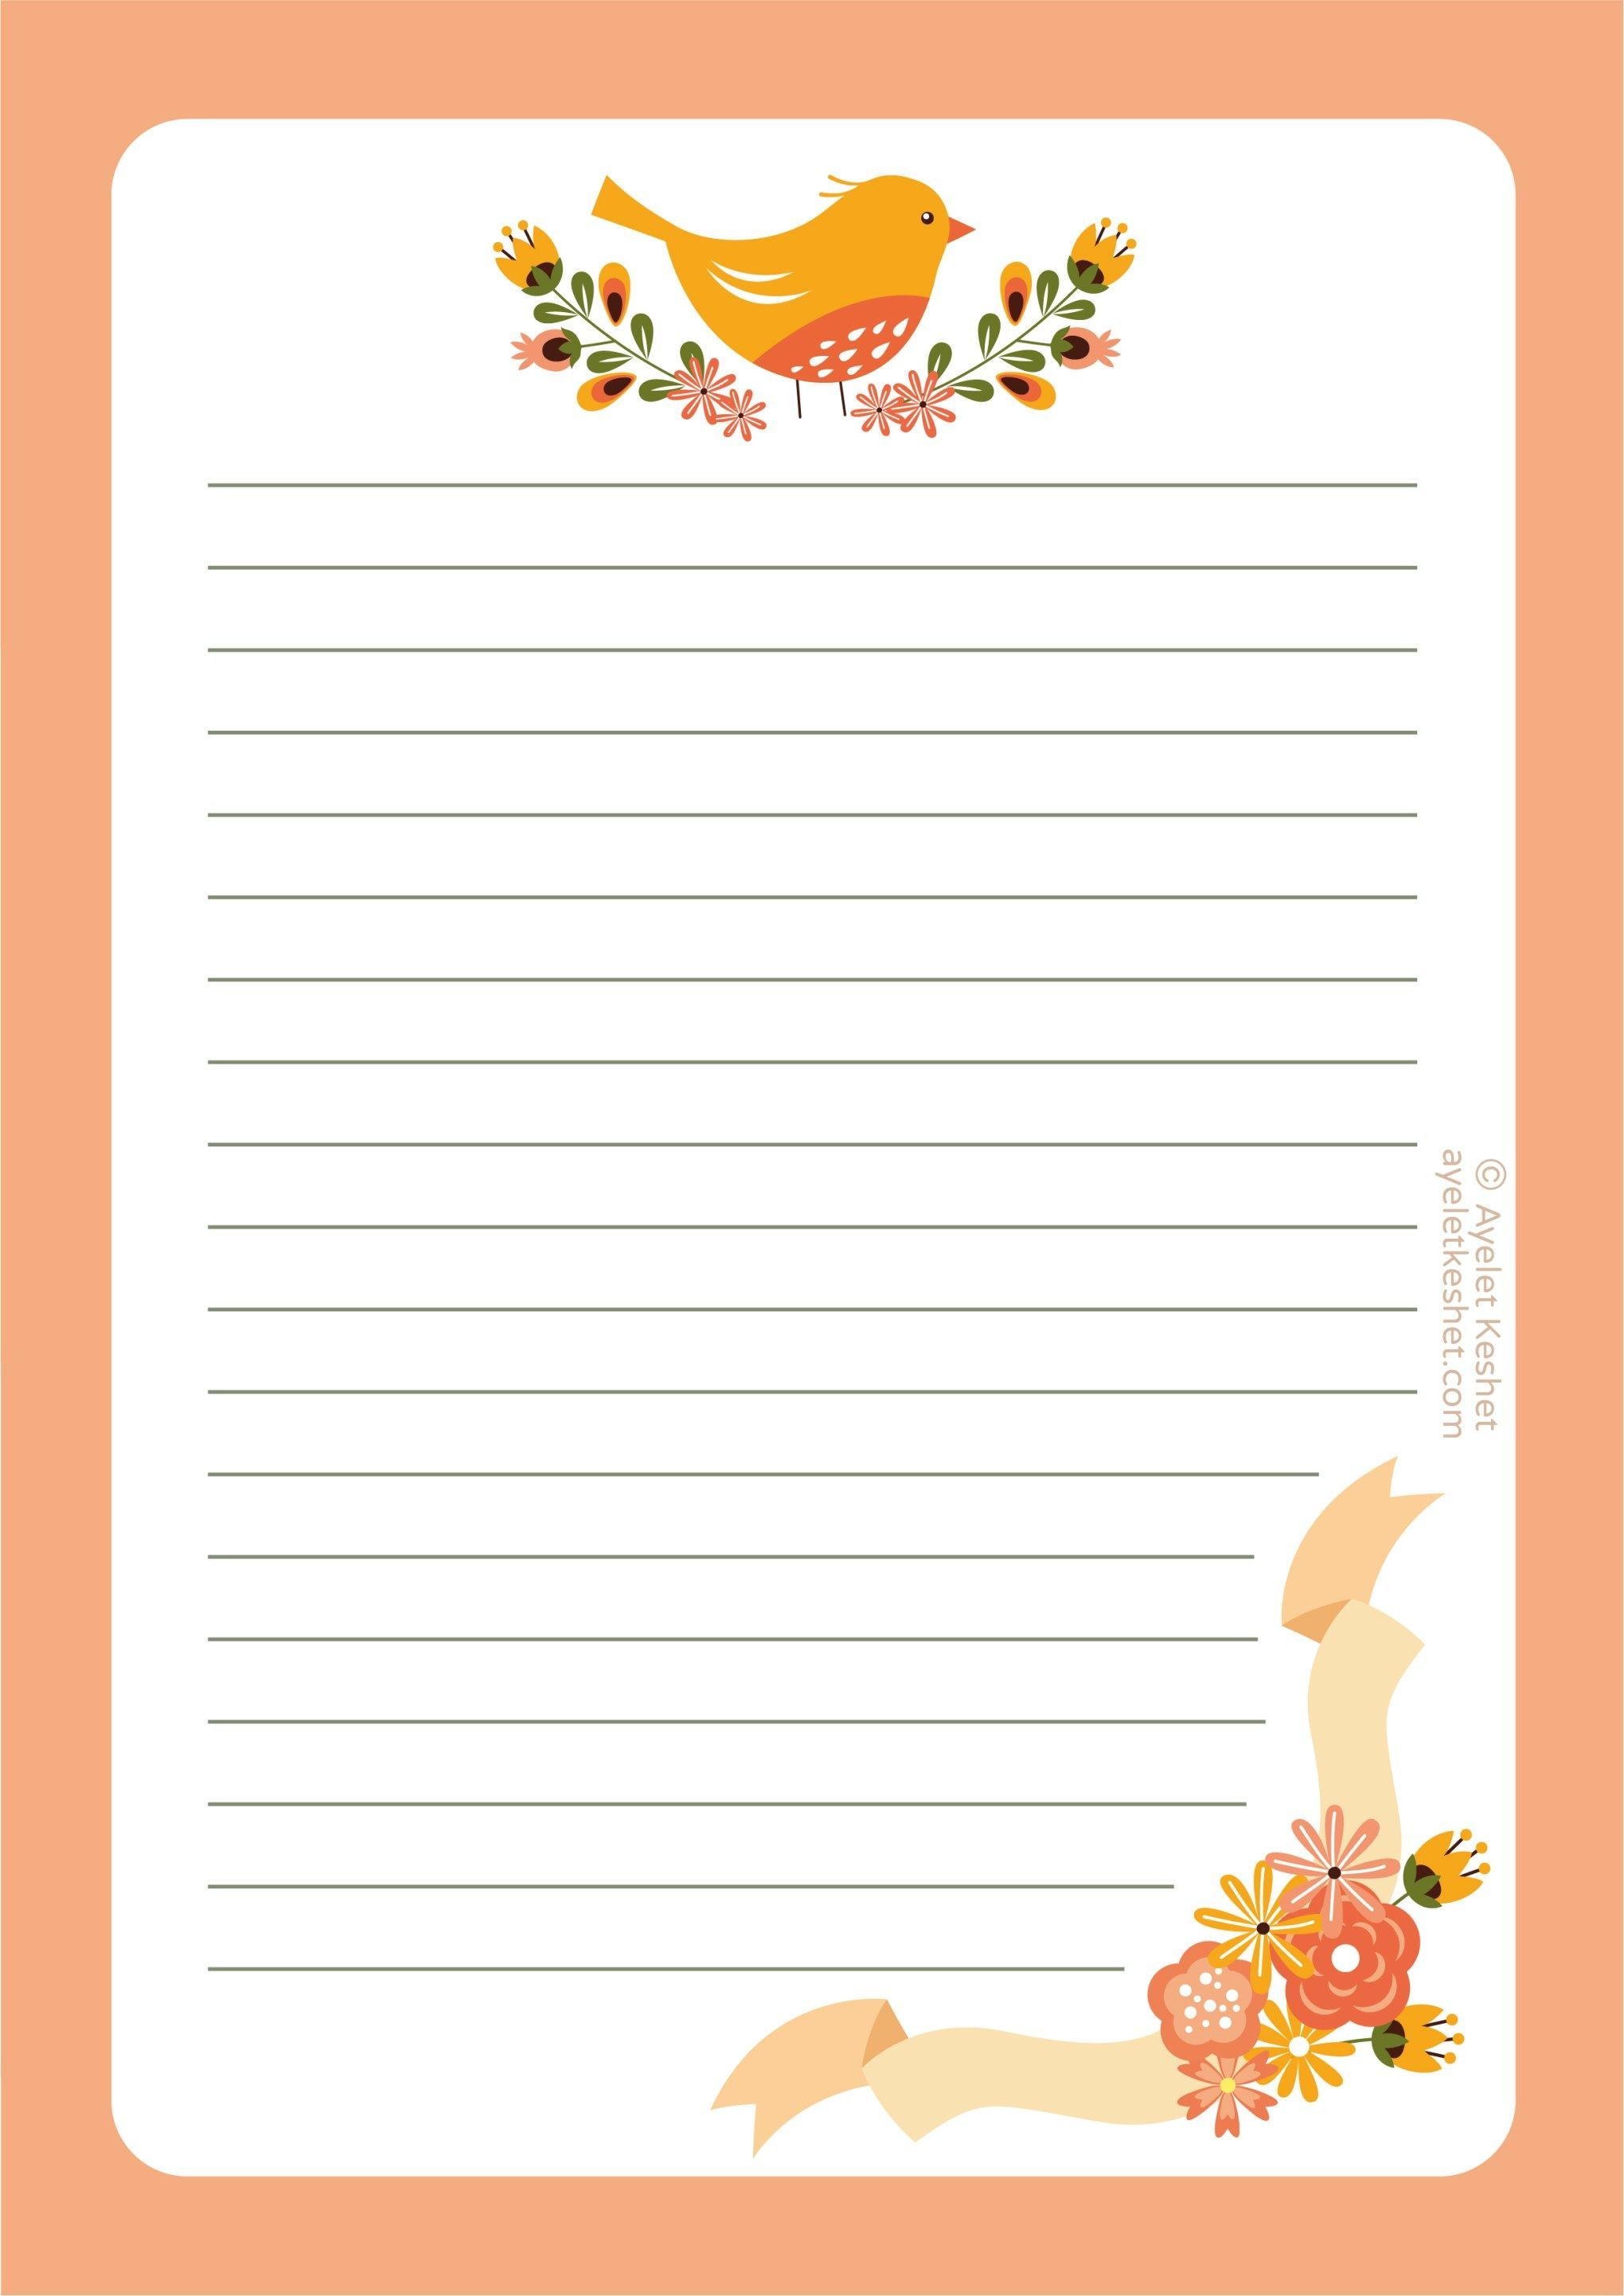 Free Printable Writing Paper Letter Paper Stationery With Cute And Colorful Desi Writing Paper Printable Stationery Writing Paper Printable Stationery Paper